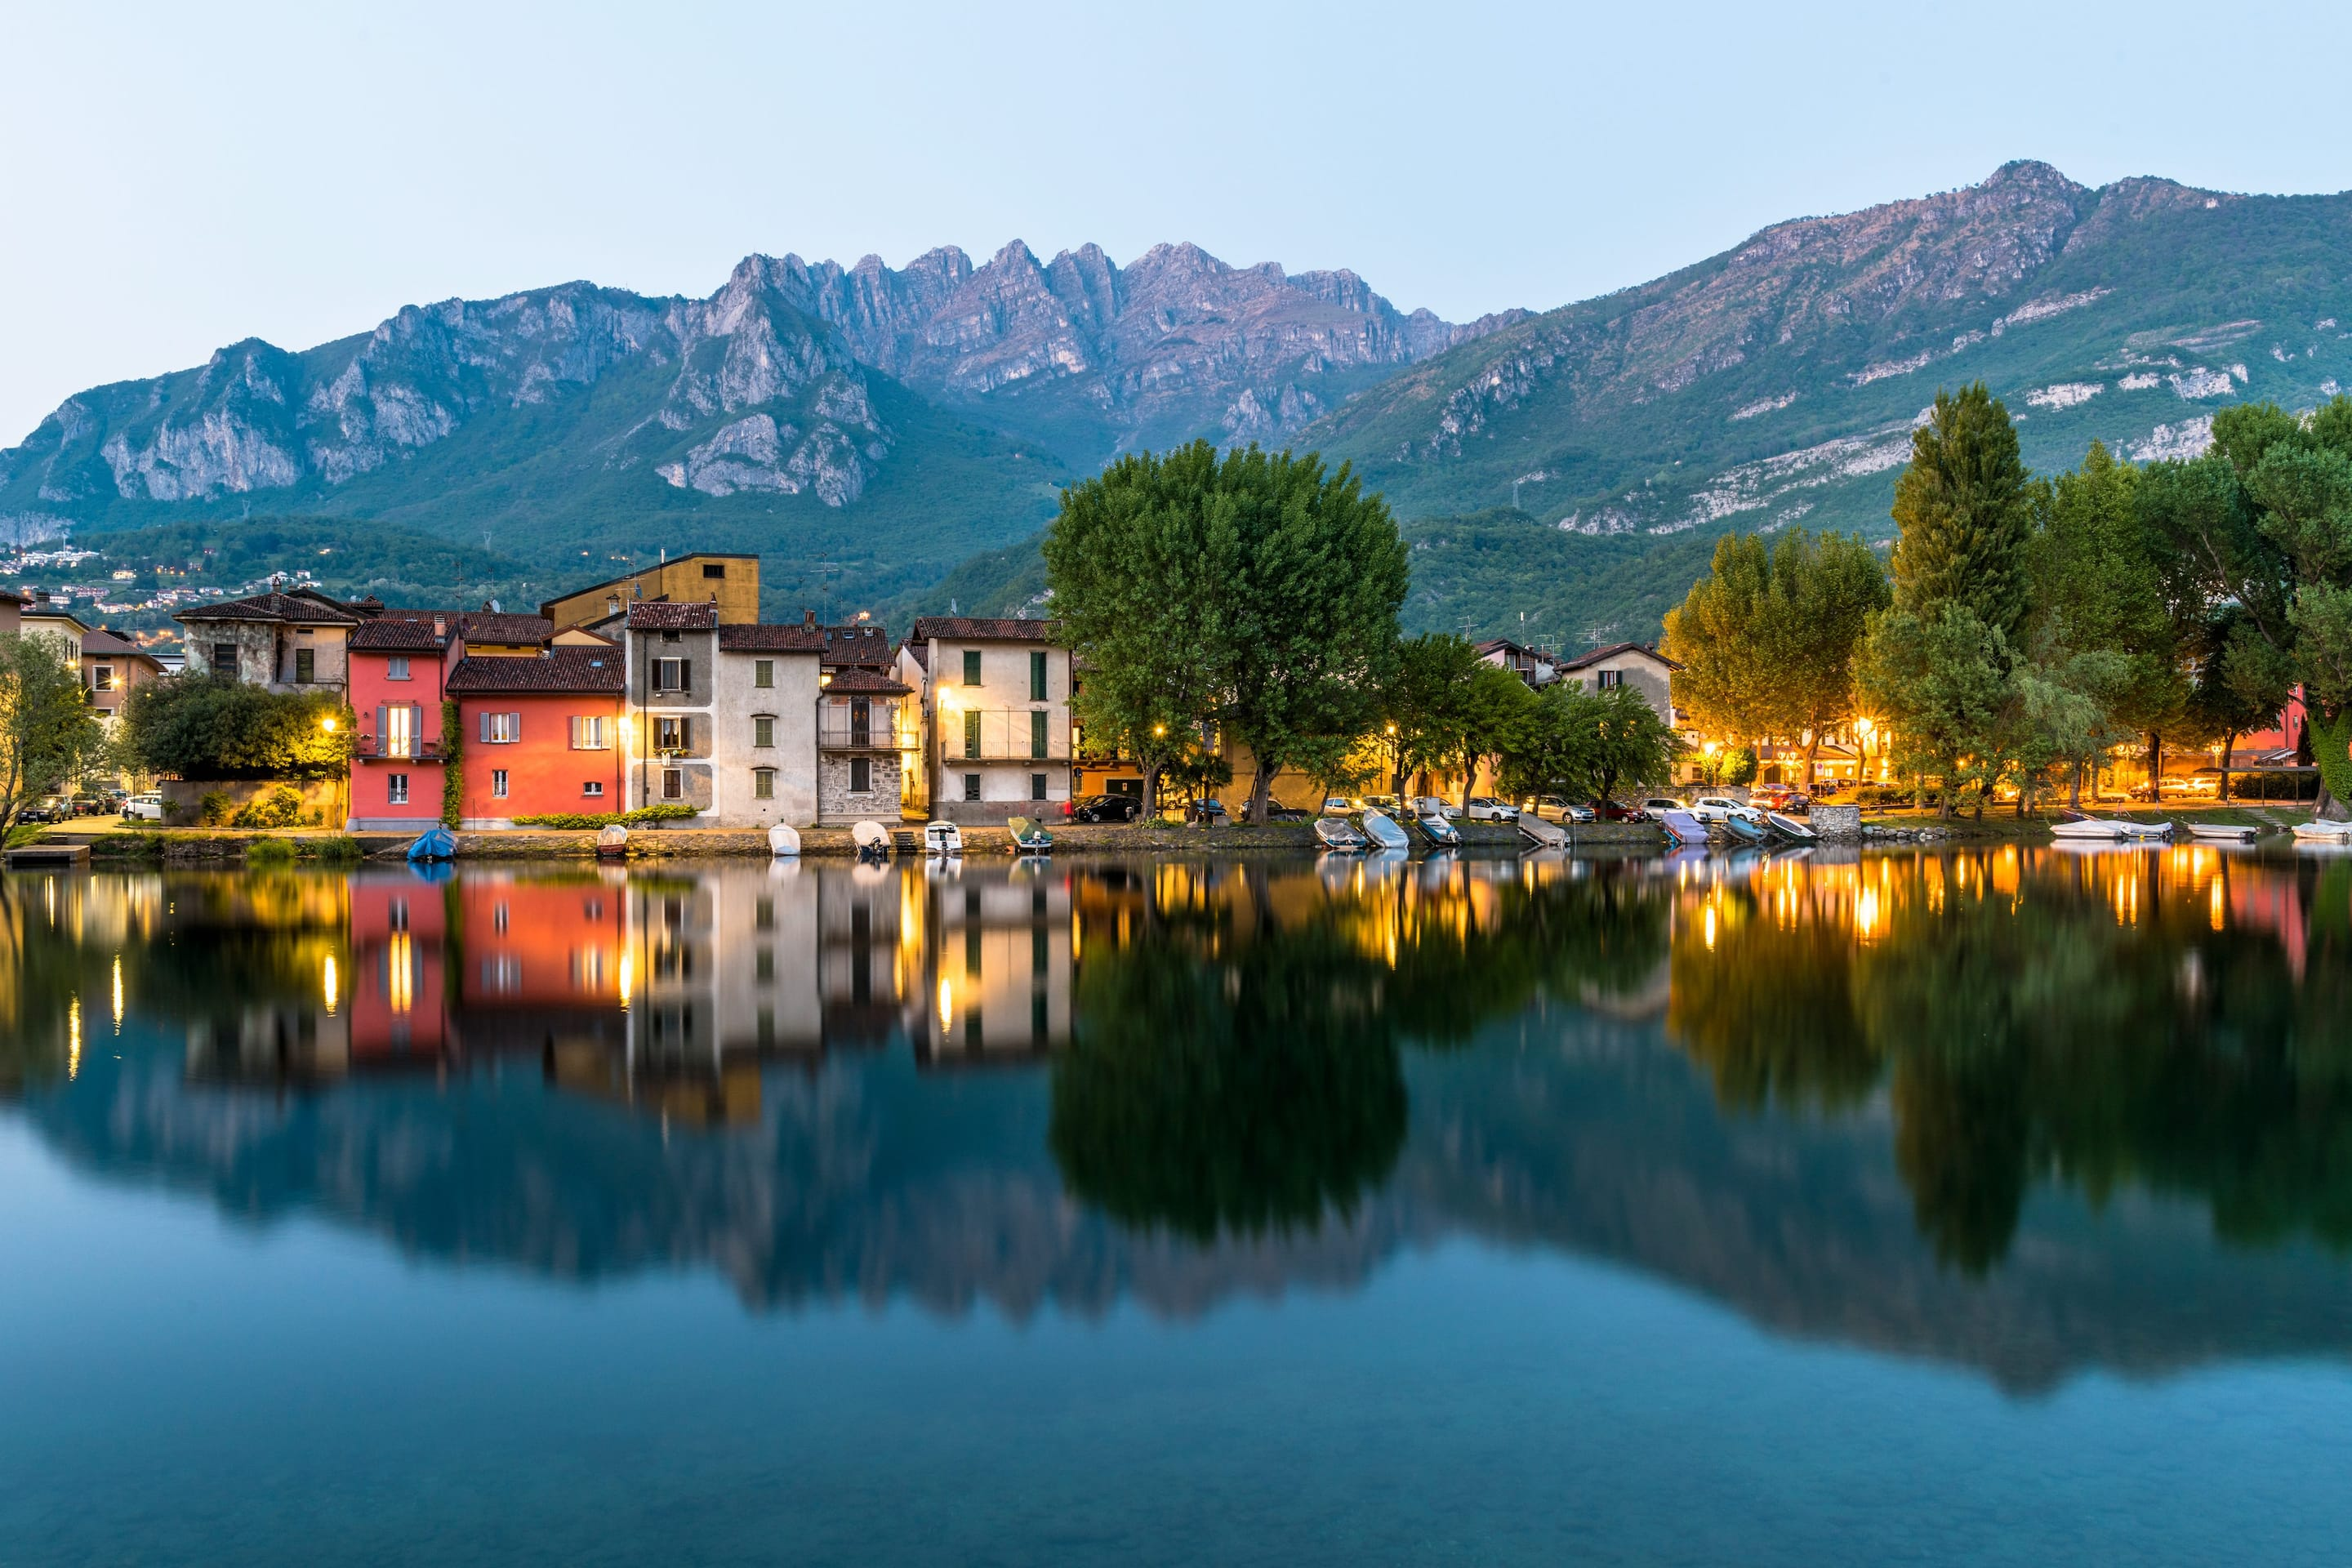 Street lights illuminate colourful buildings and trees along Lake Como